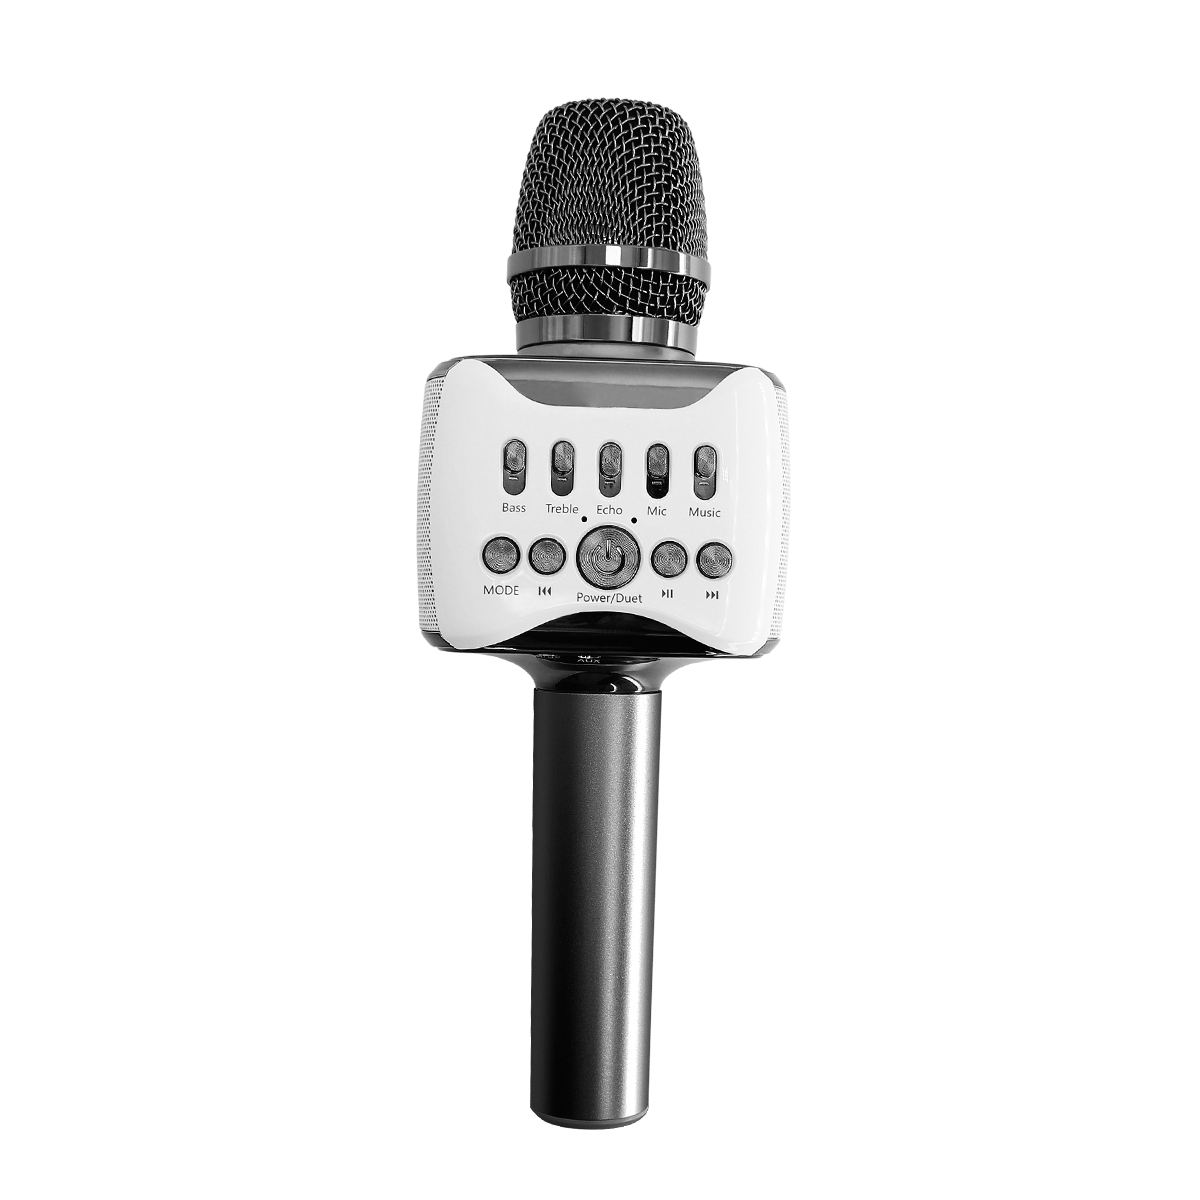 New designed wireless handheld karaoke microphone speaker for home party with duet function